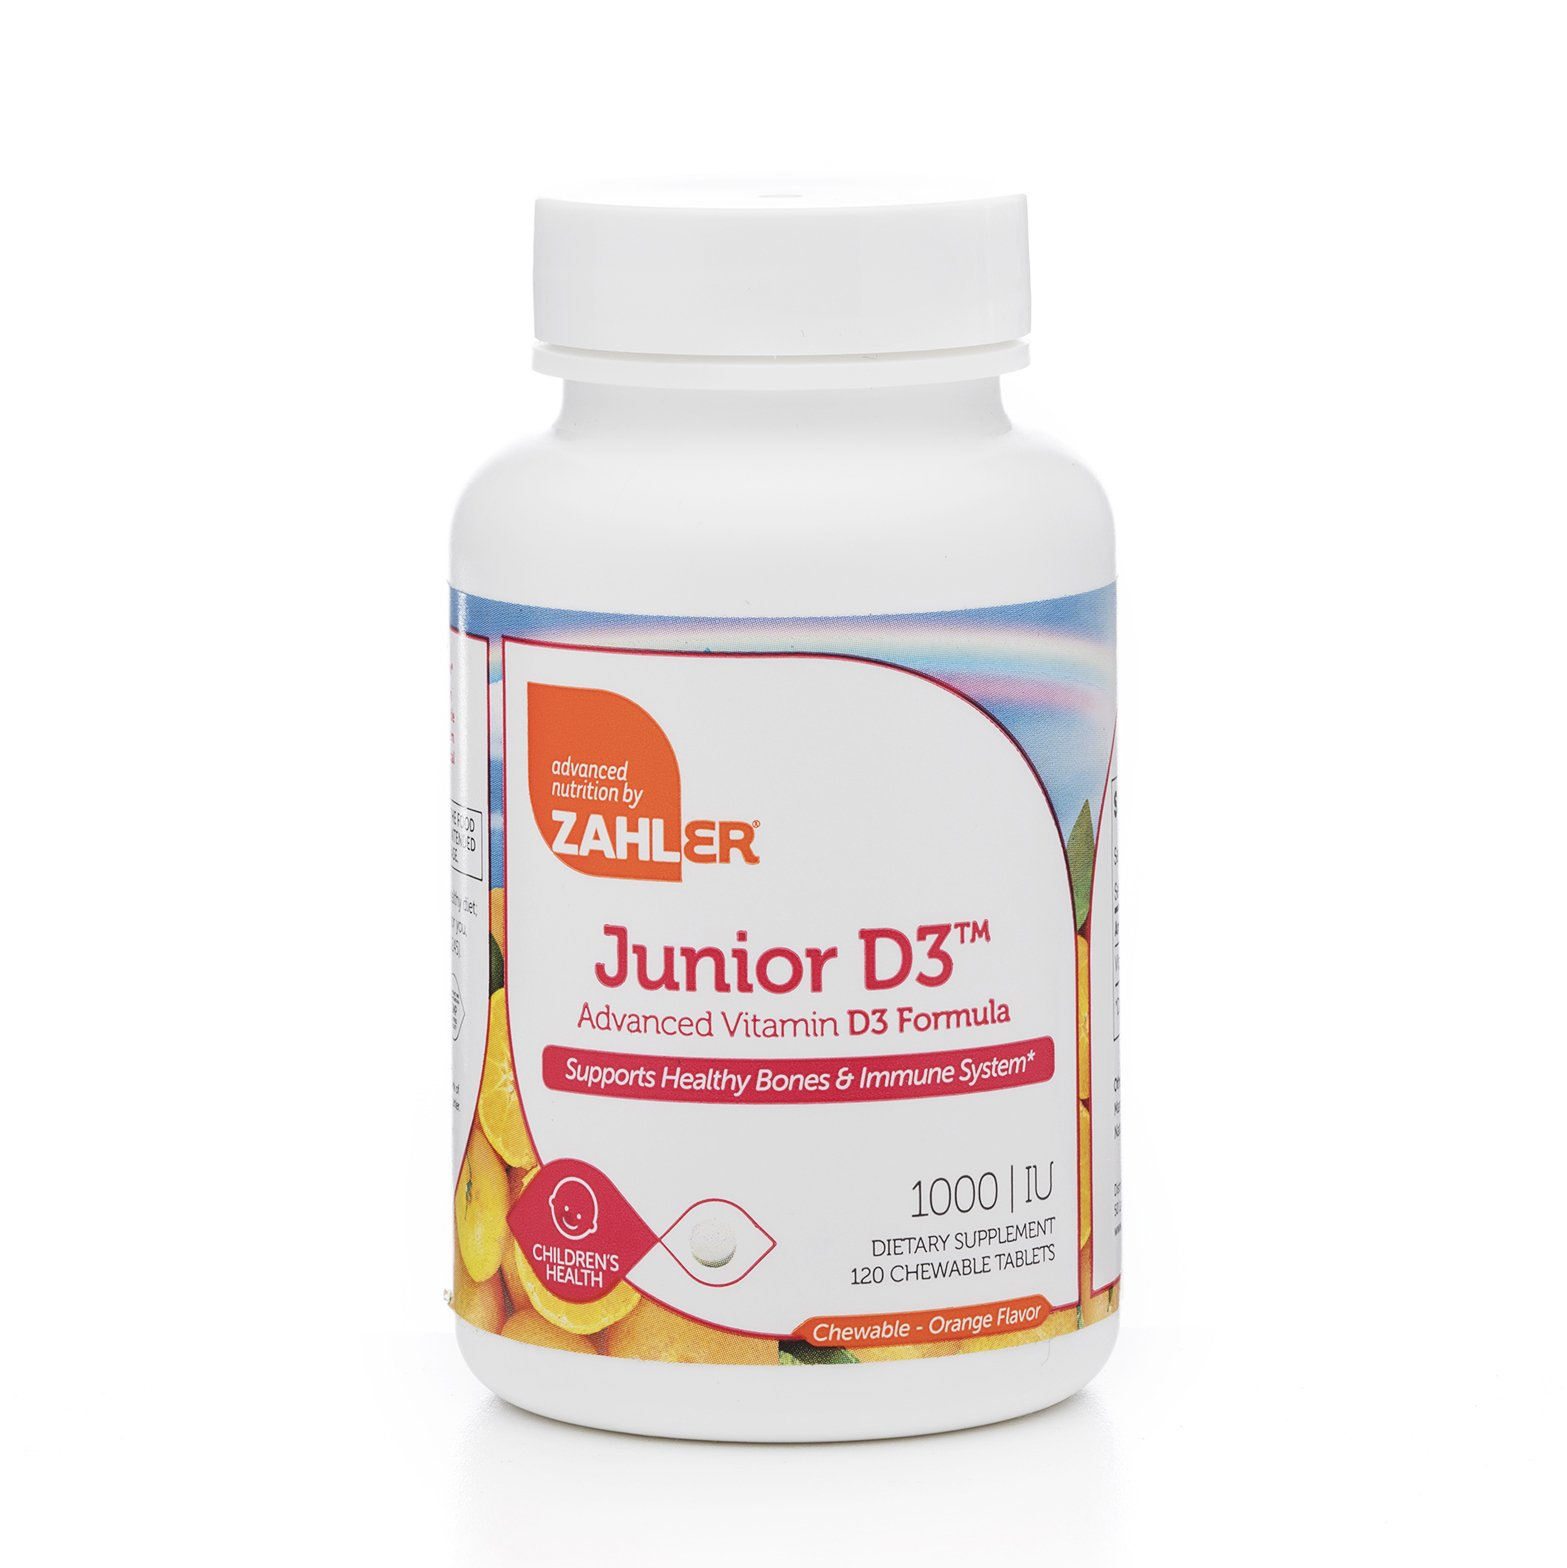 Zahler Junior D3 Chewable 1000IU, Kids Vitamin D, Great Tasting Chewable Vitamin D for Kids, Optimal Vitamin D3 1000 IU for Children,Certified Kosher, 120 Chewable Tablets by Zahler